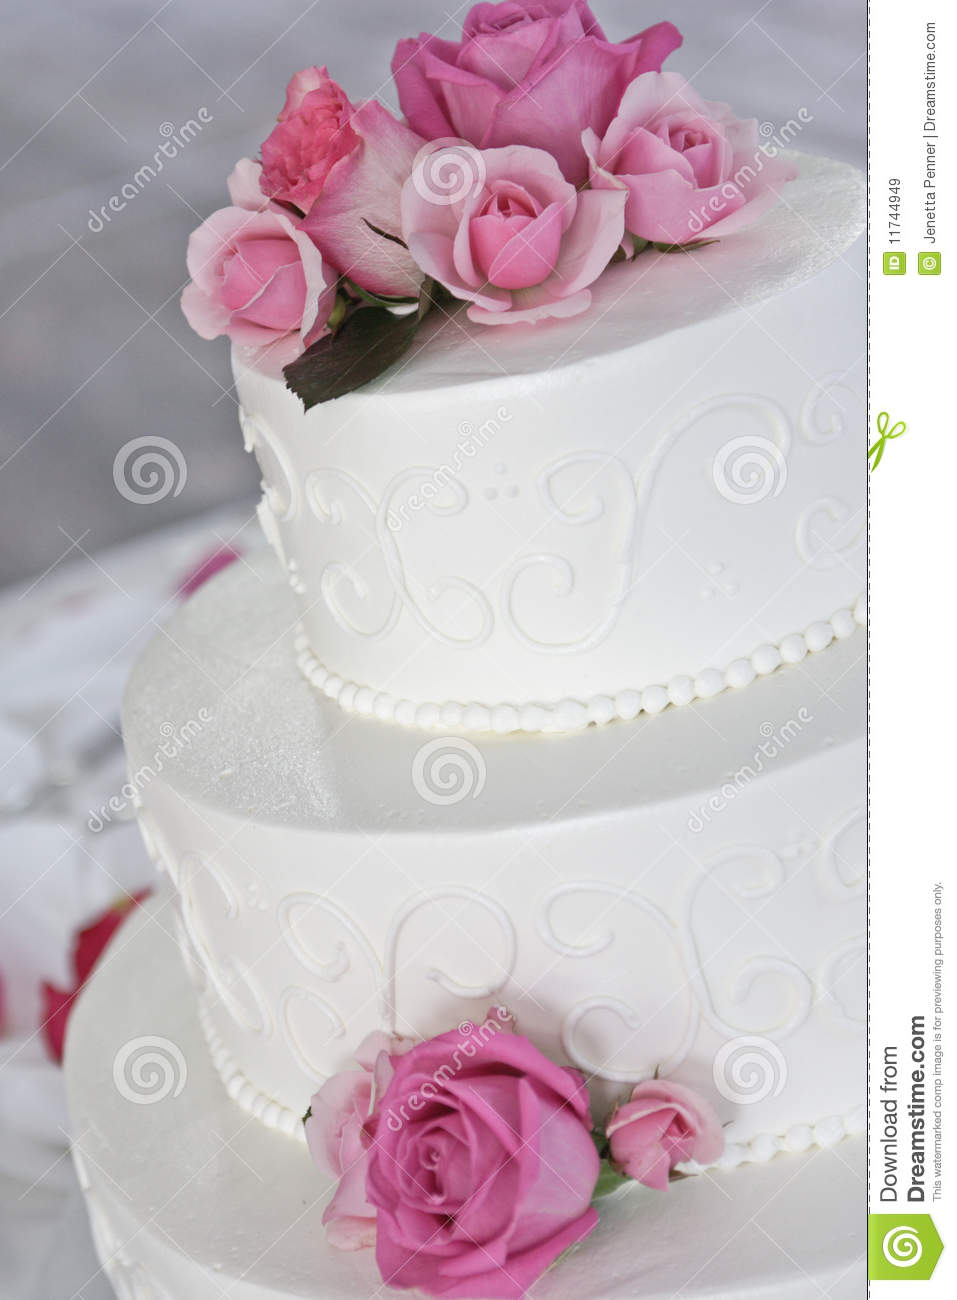 Wedding Cake With Pink Roses Stock Image Image 11744949